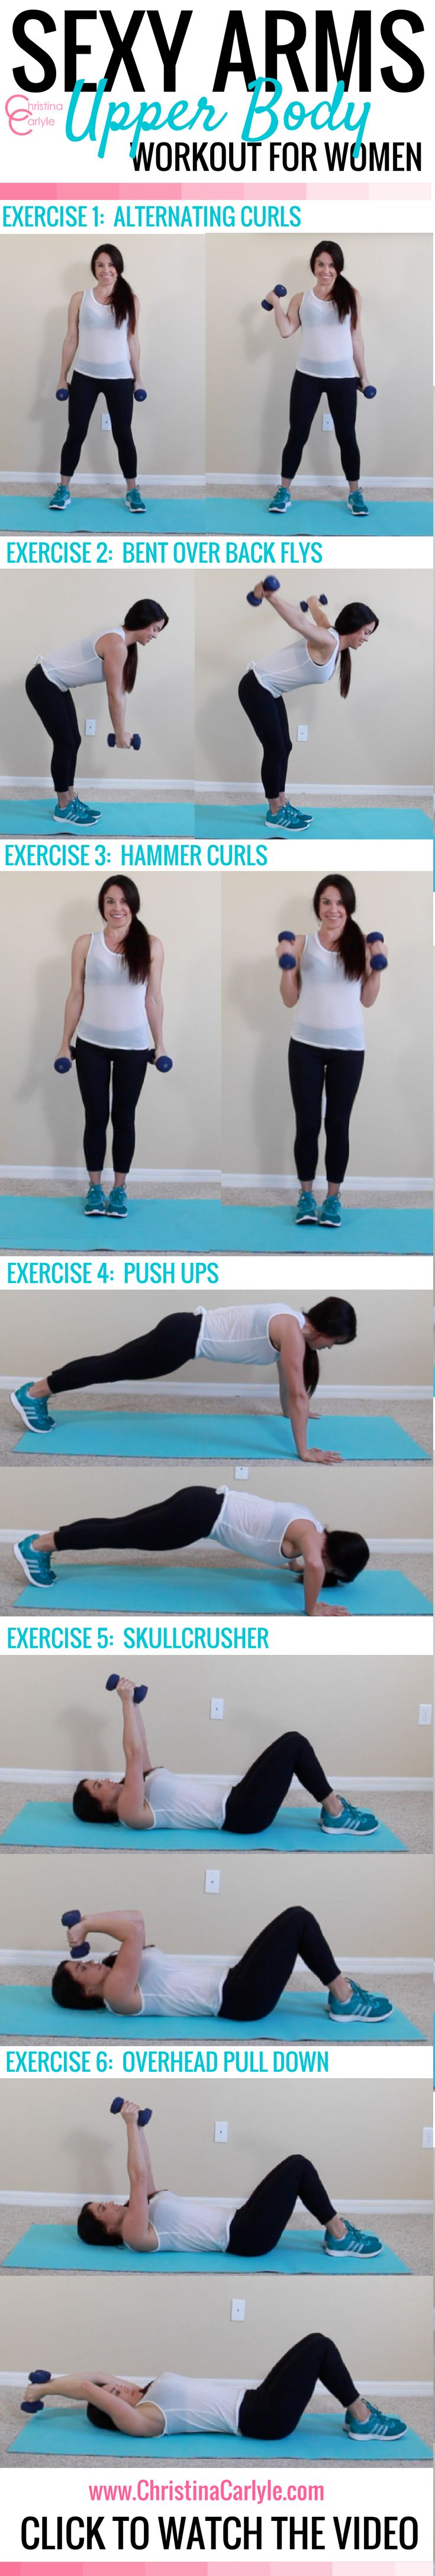 arm exercises - workouts for women - christina carlyle